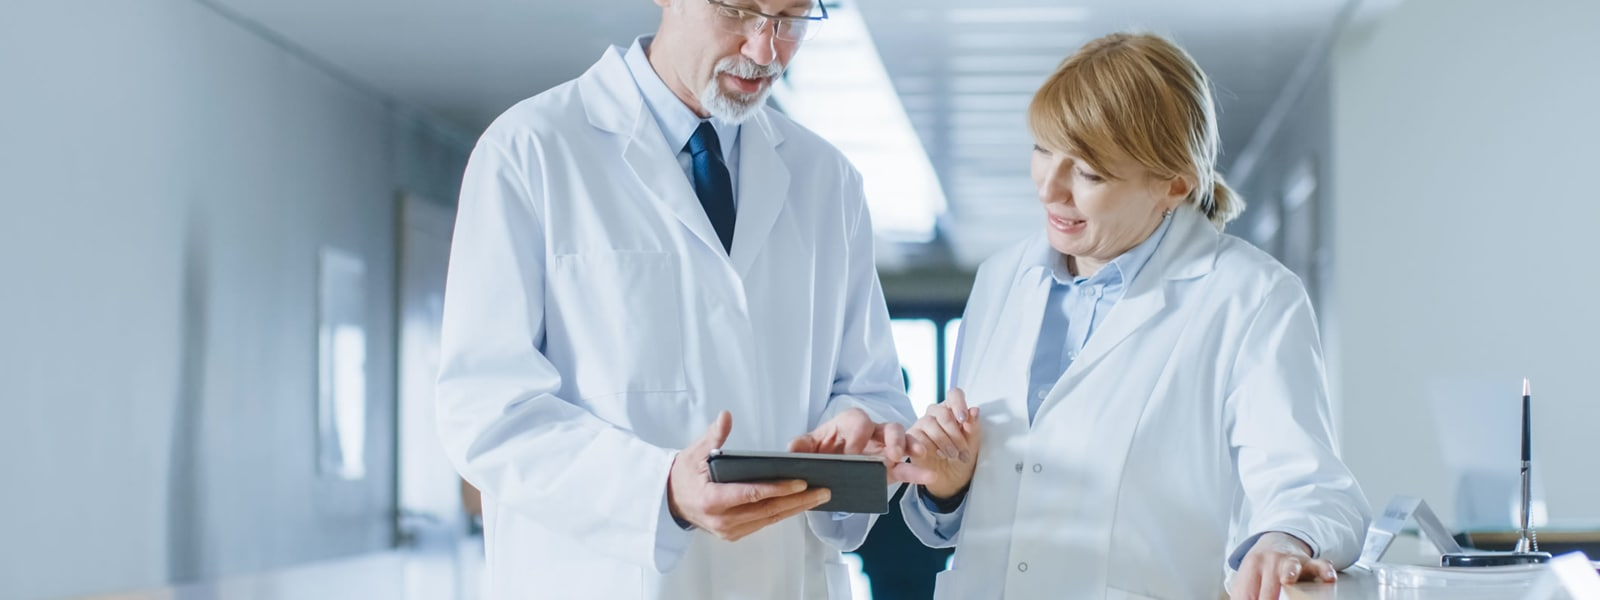 Two medical professionals looking at tablet in hospital setting